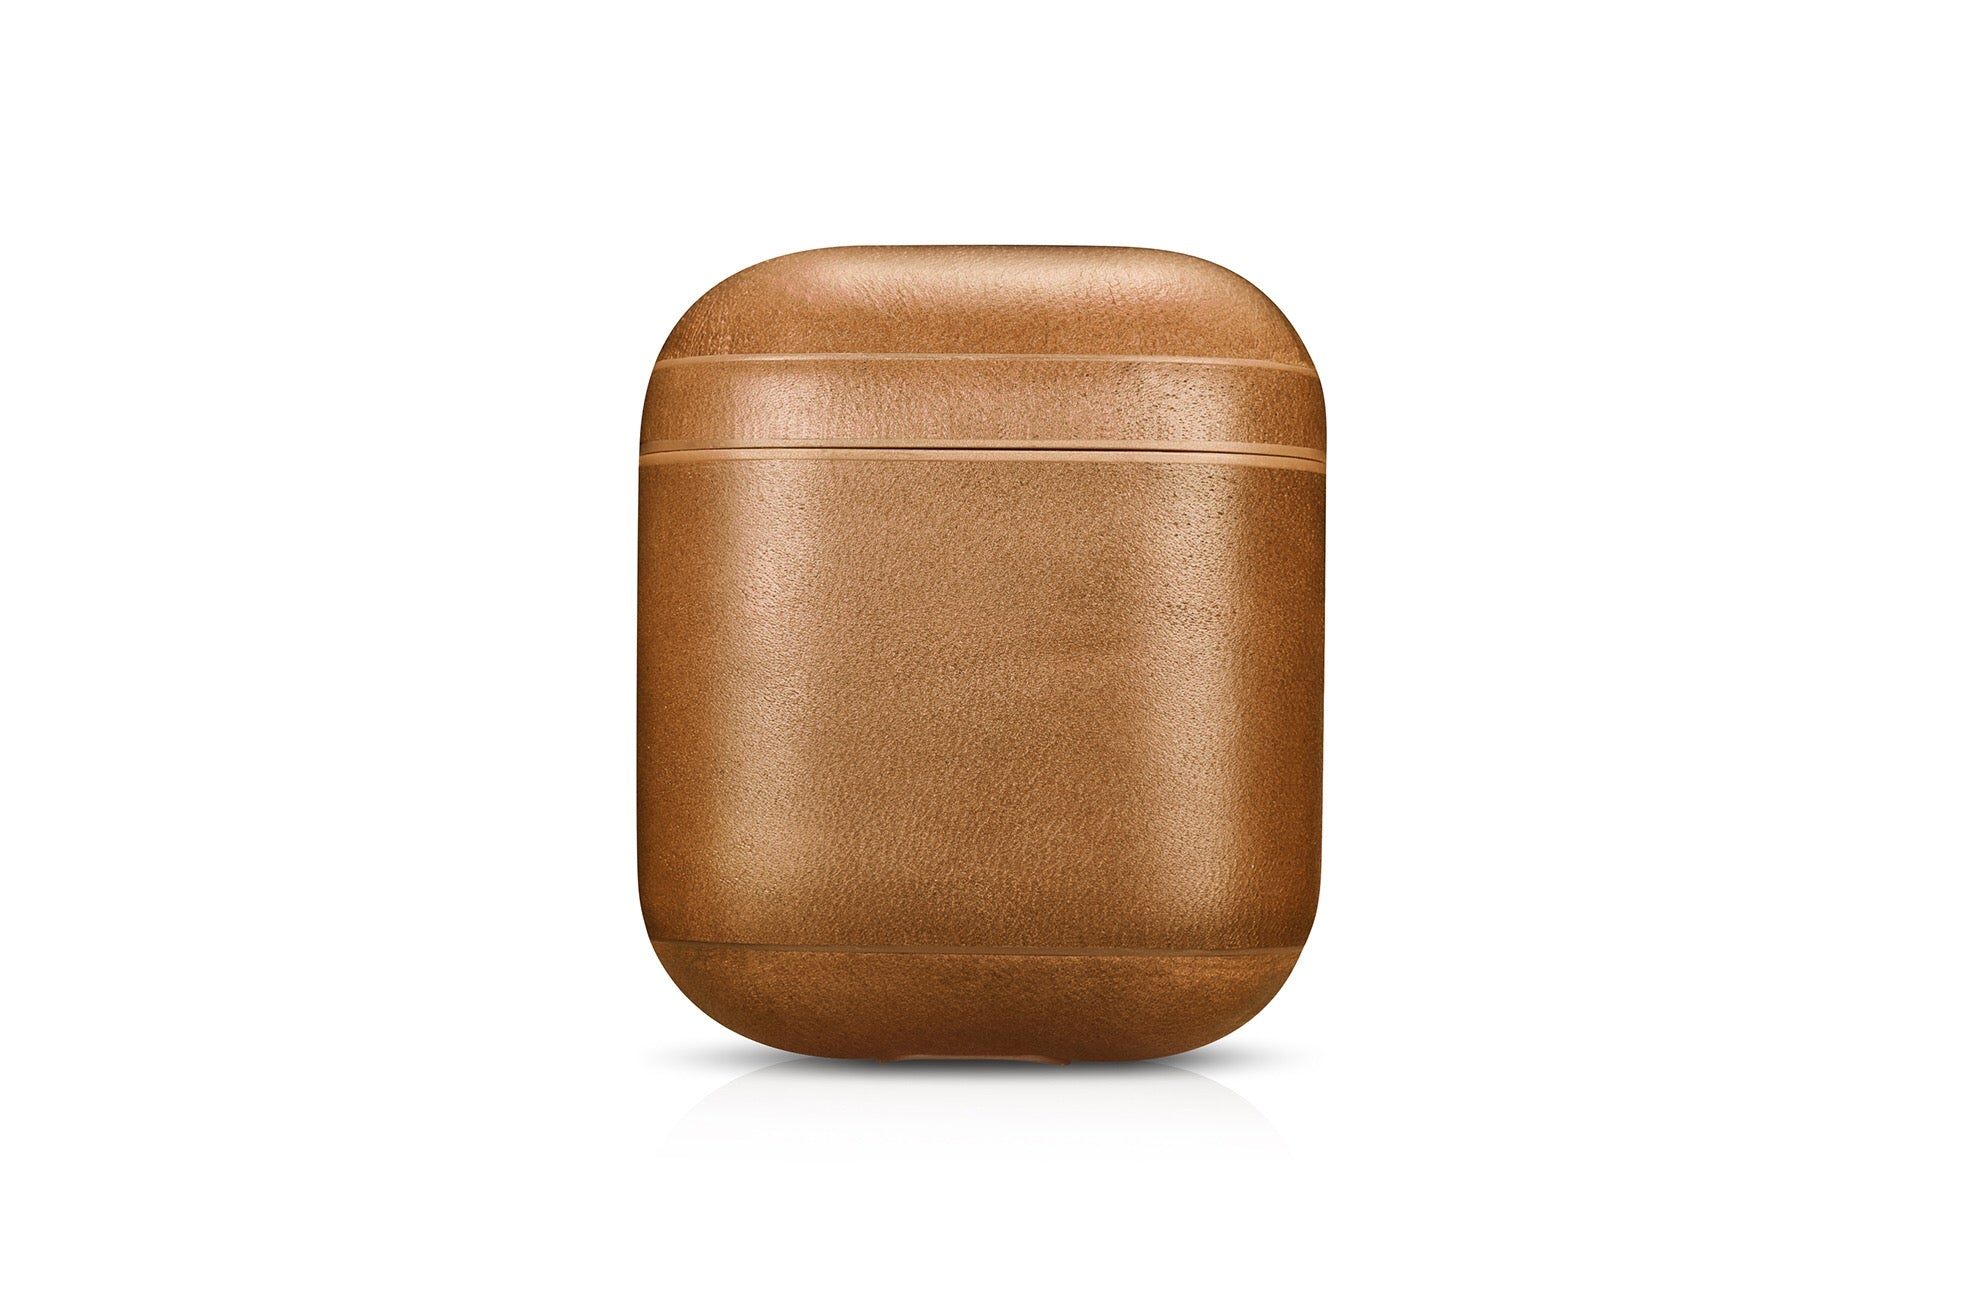 Vintage Tan Premium Leather AirPods 1 & 2 Case